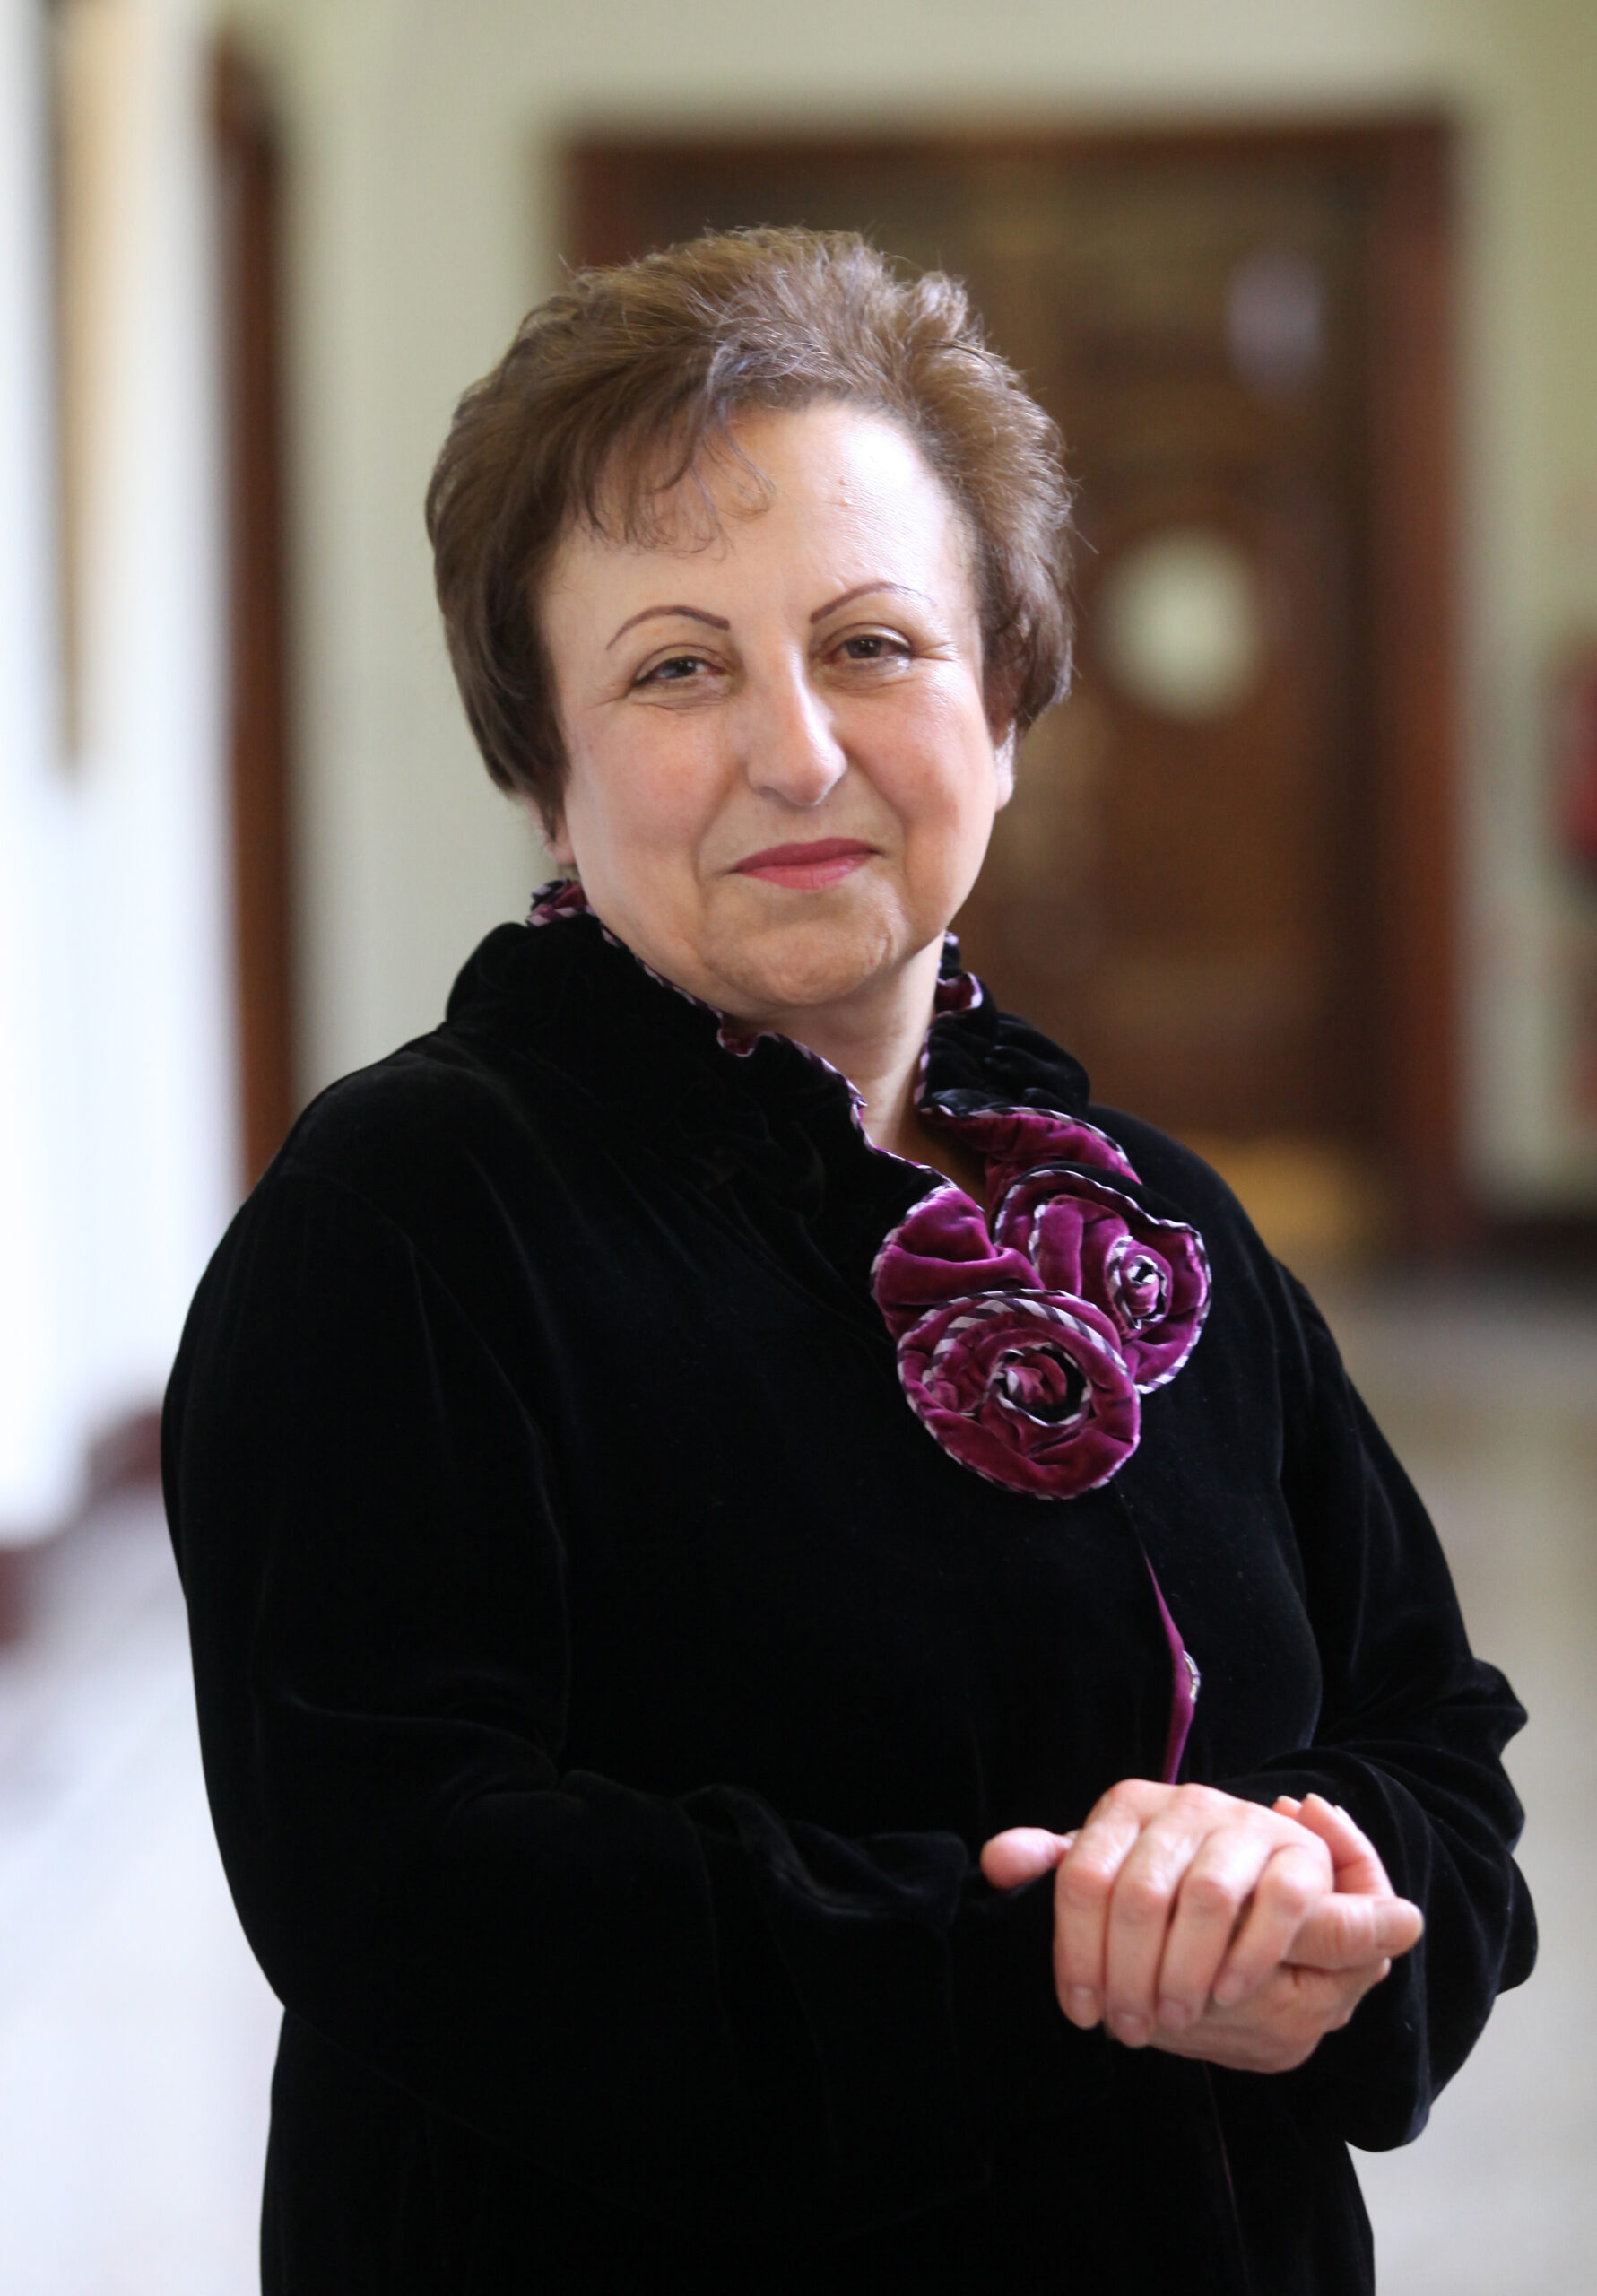 Dr. Shirin Ebadi, The First Female Peace Prize Laureate from the Islamic World